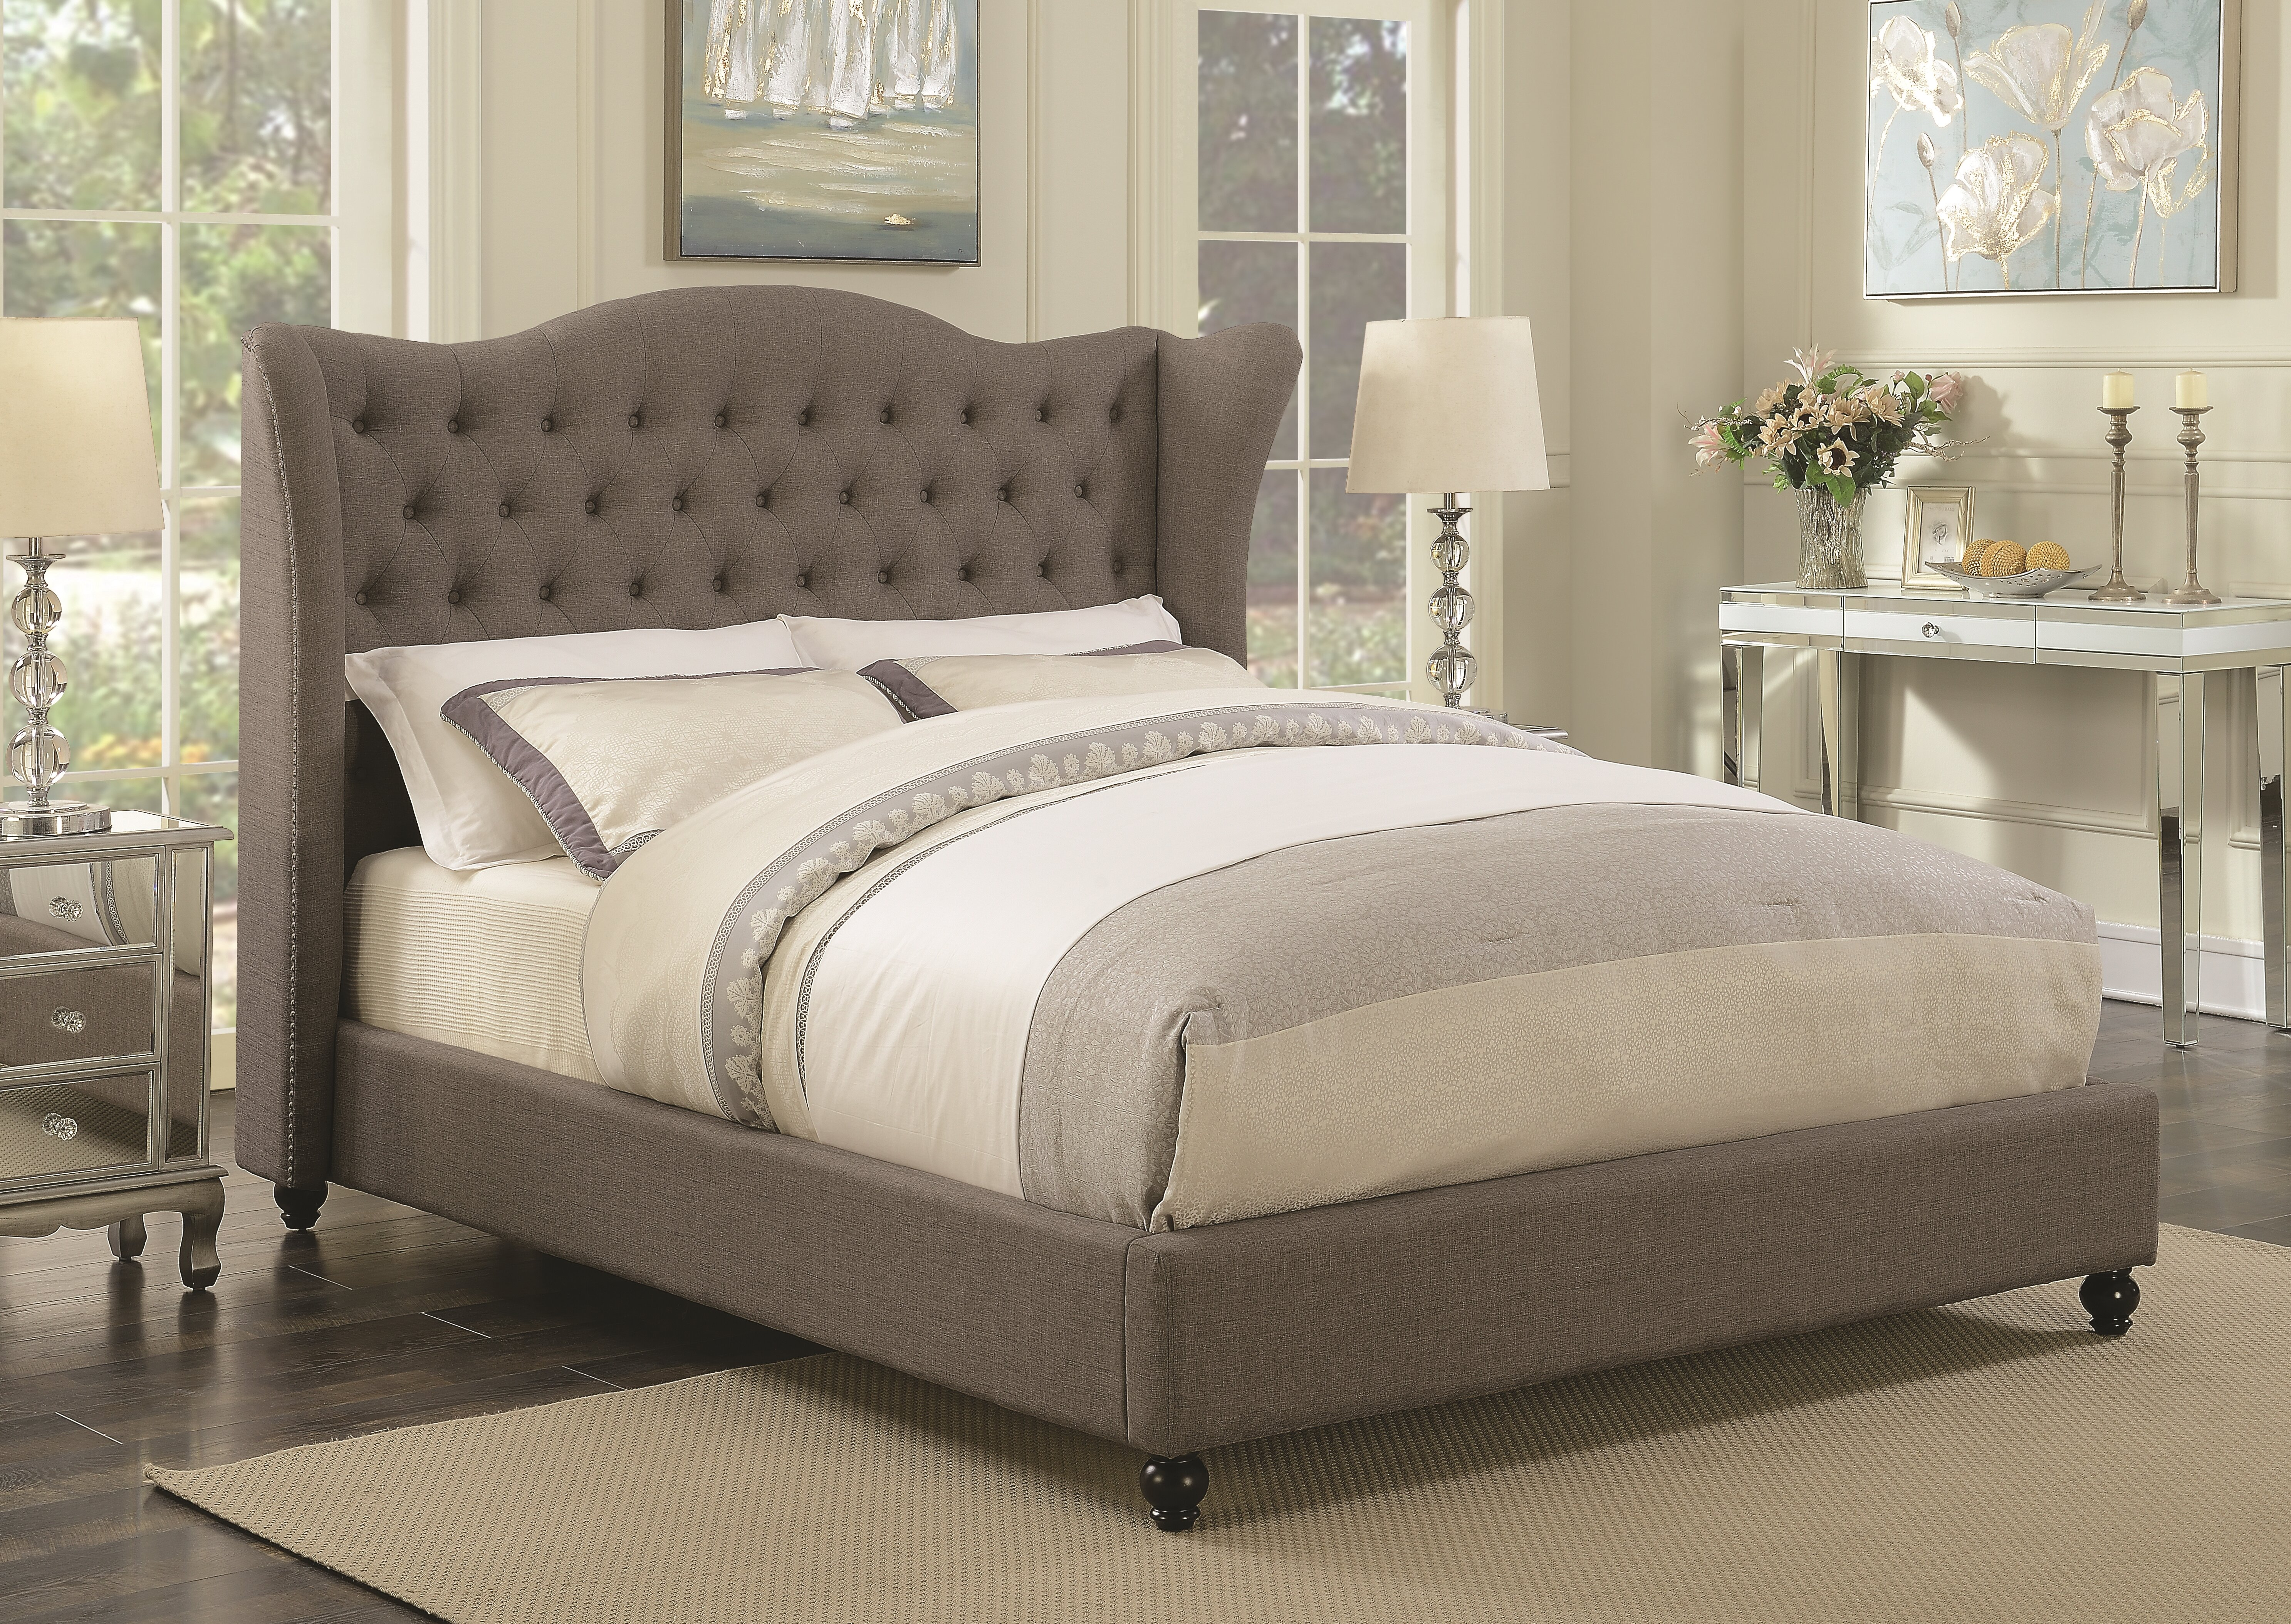 Darby Home Co Pipers Upholstered Panel Bed Wayfair